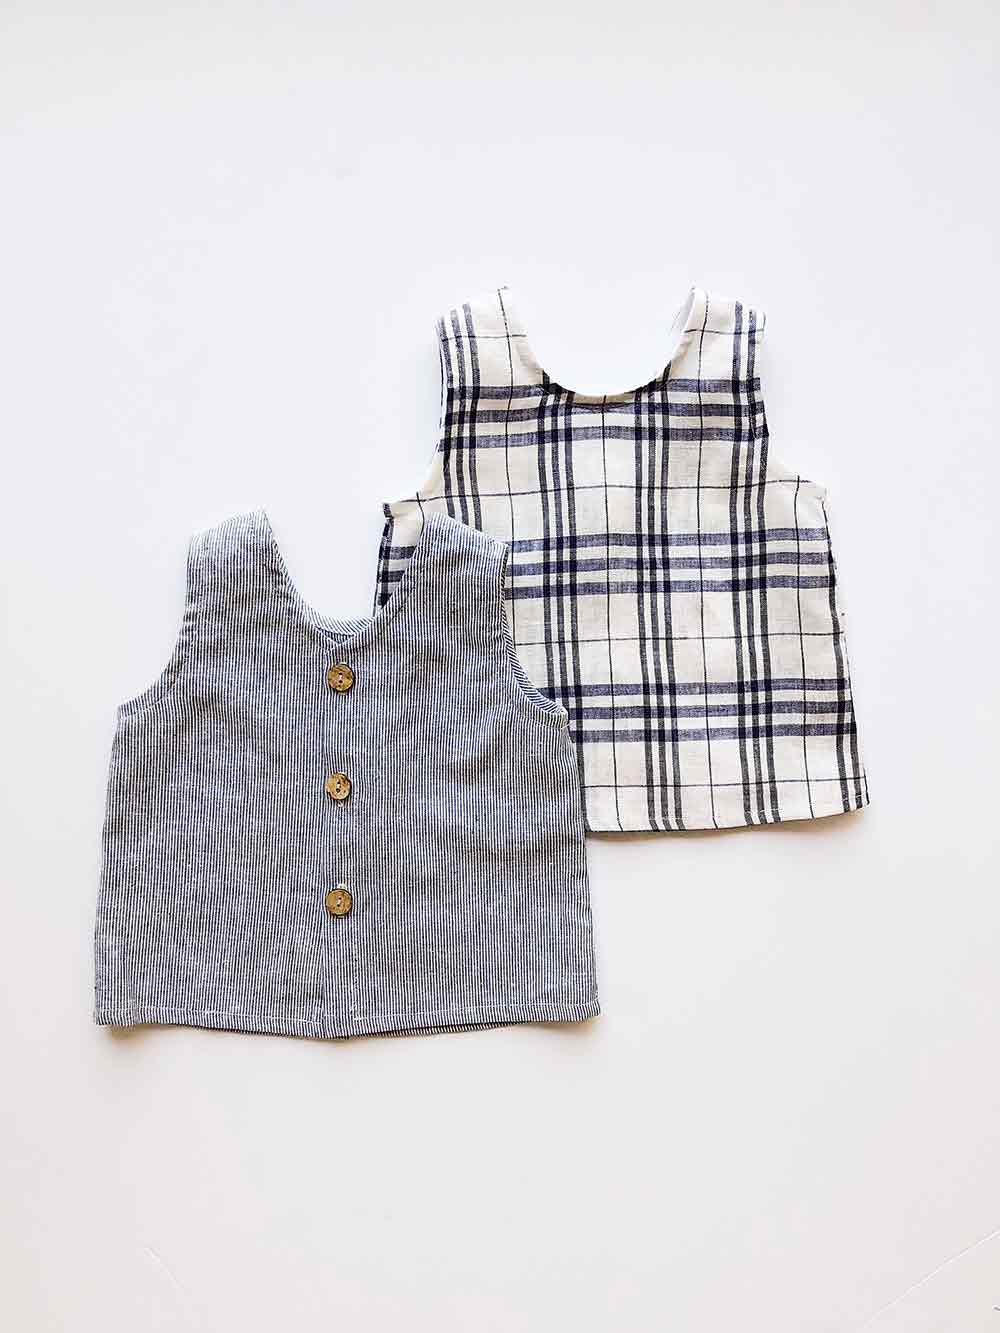 Baby toddler linen reversible vest in blue check placket opening coconut buttons